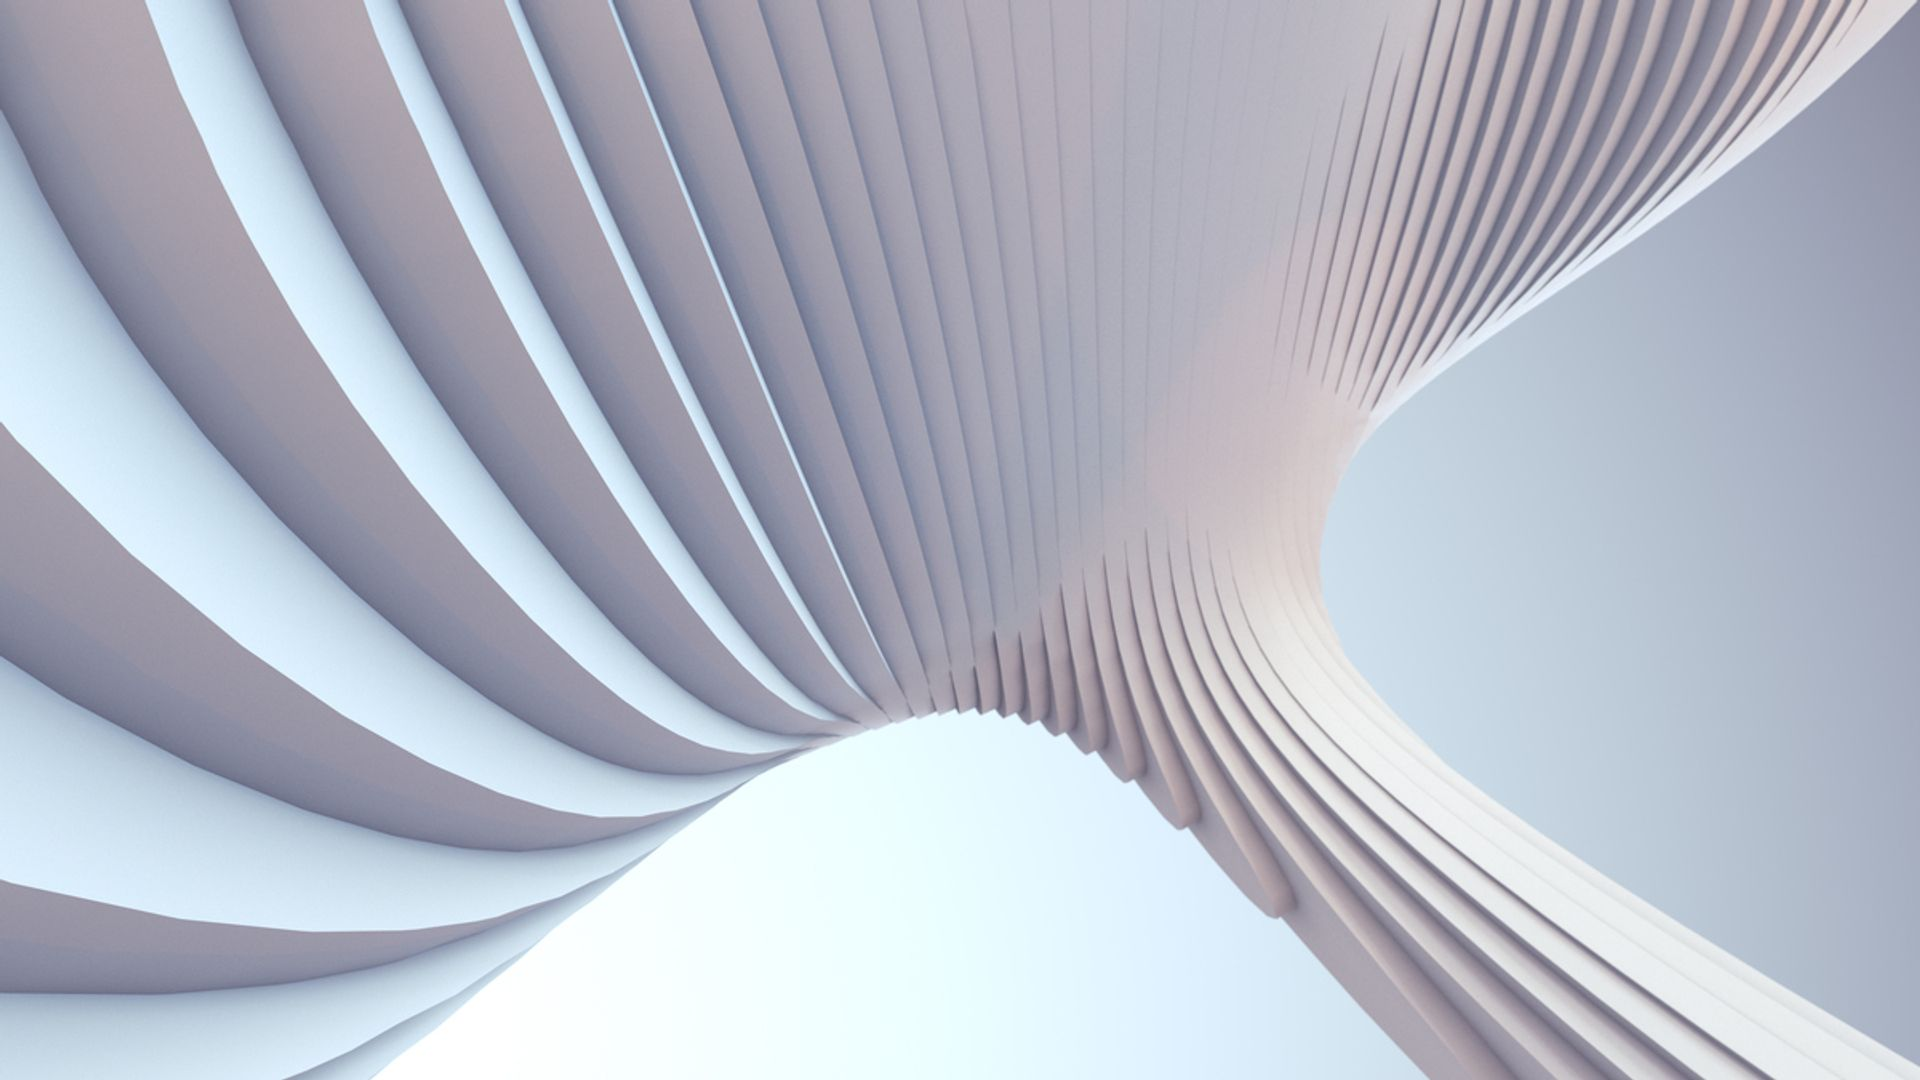 a large abstract white structure